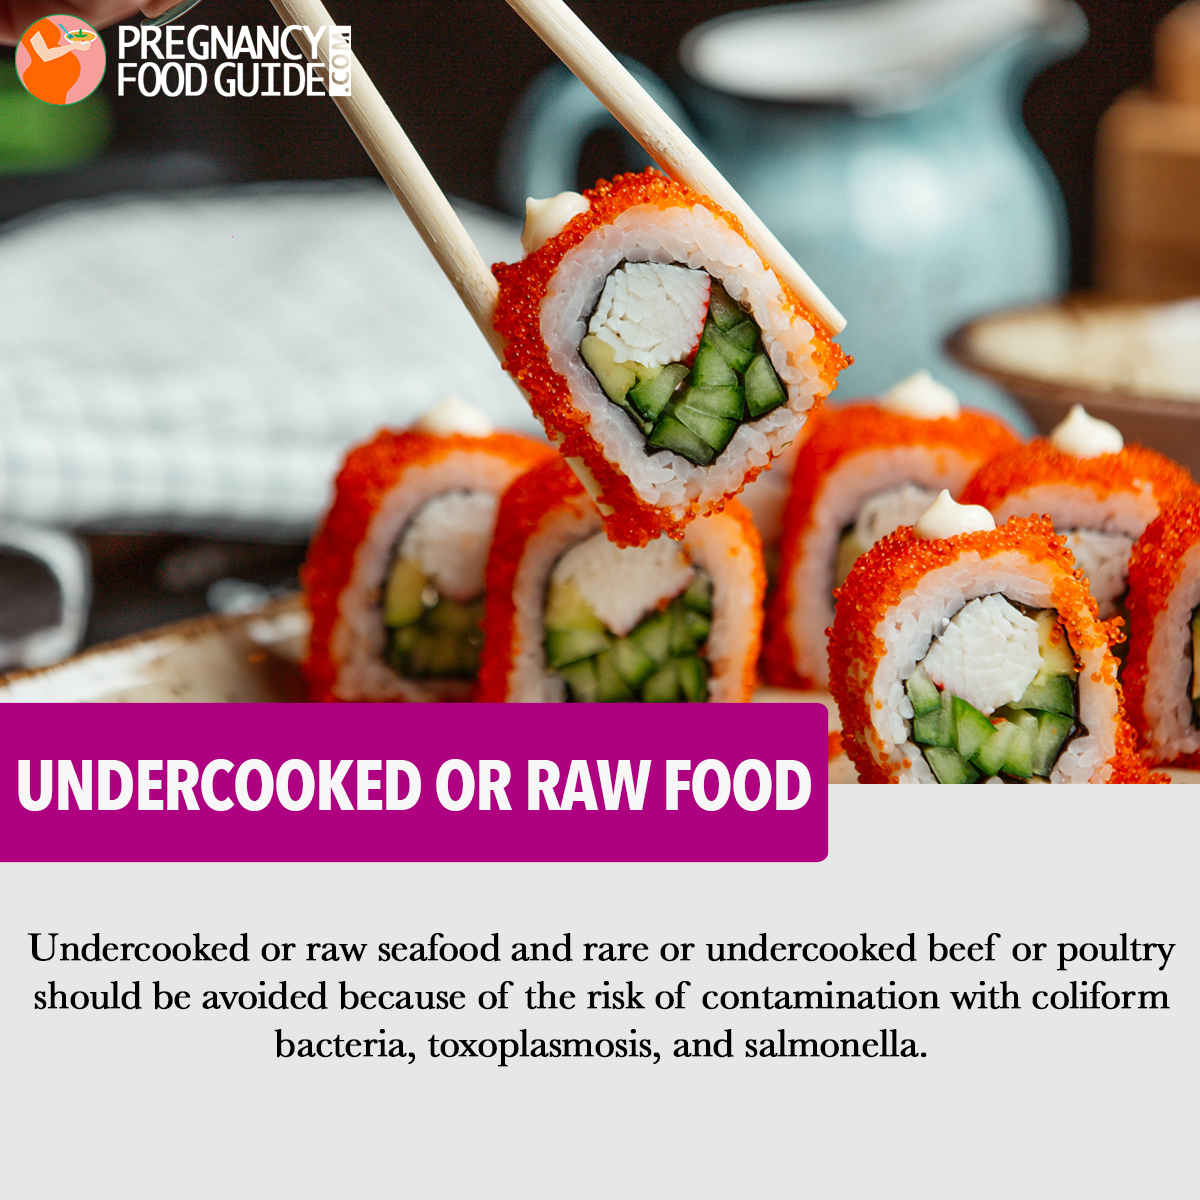 Undercooked or raw food